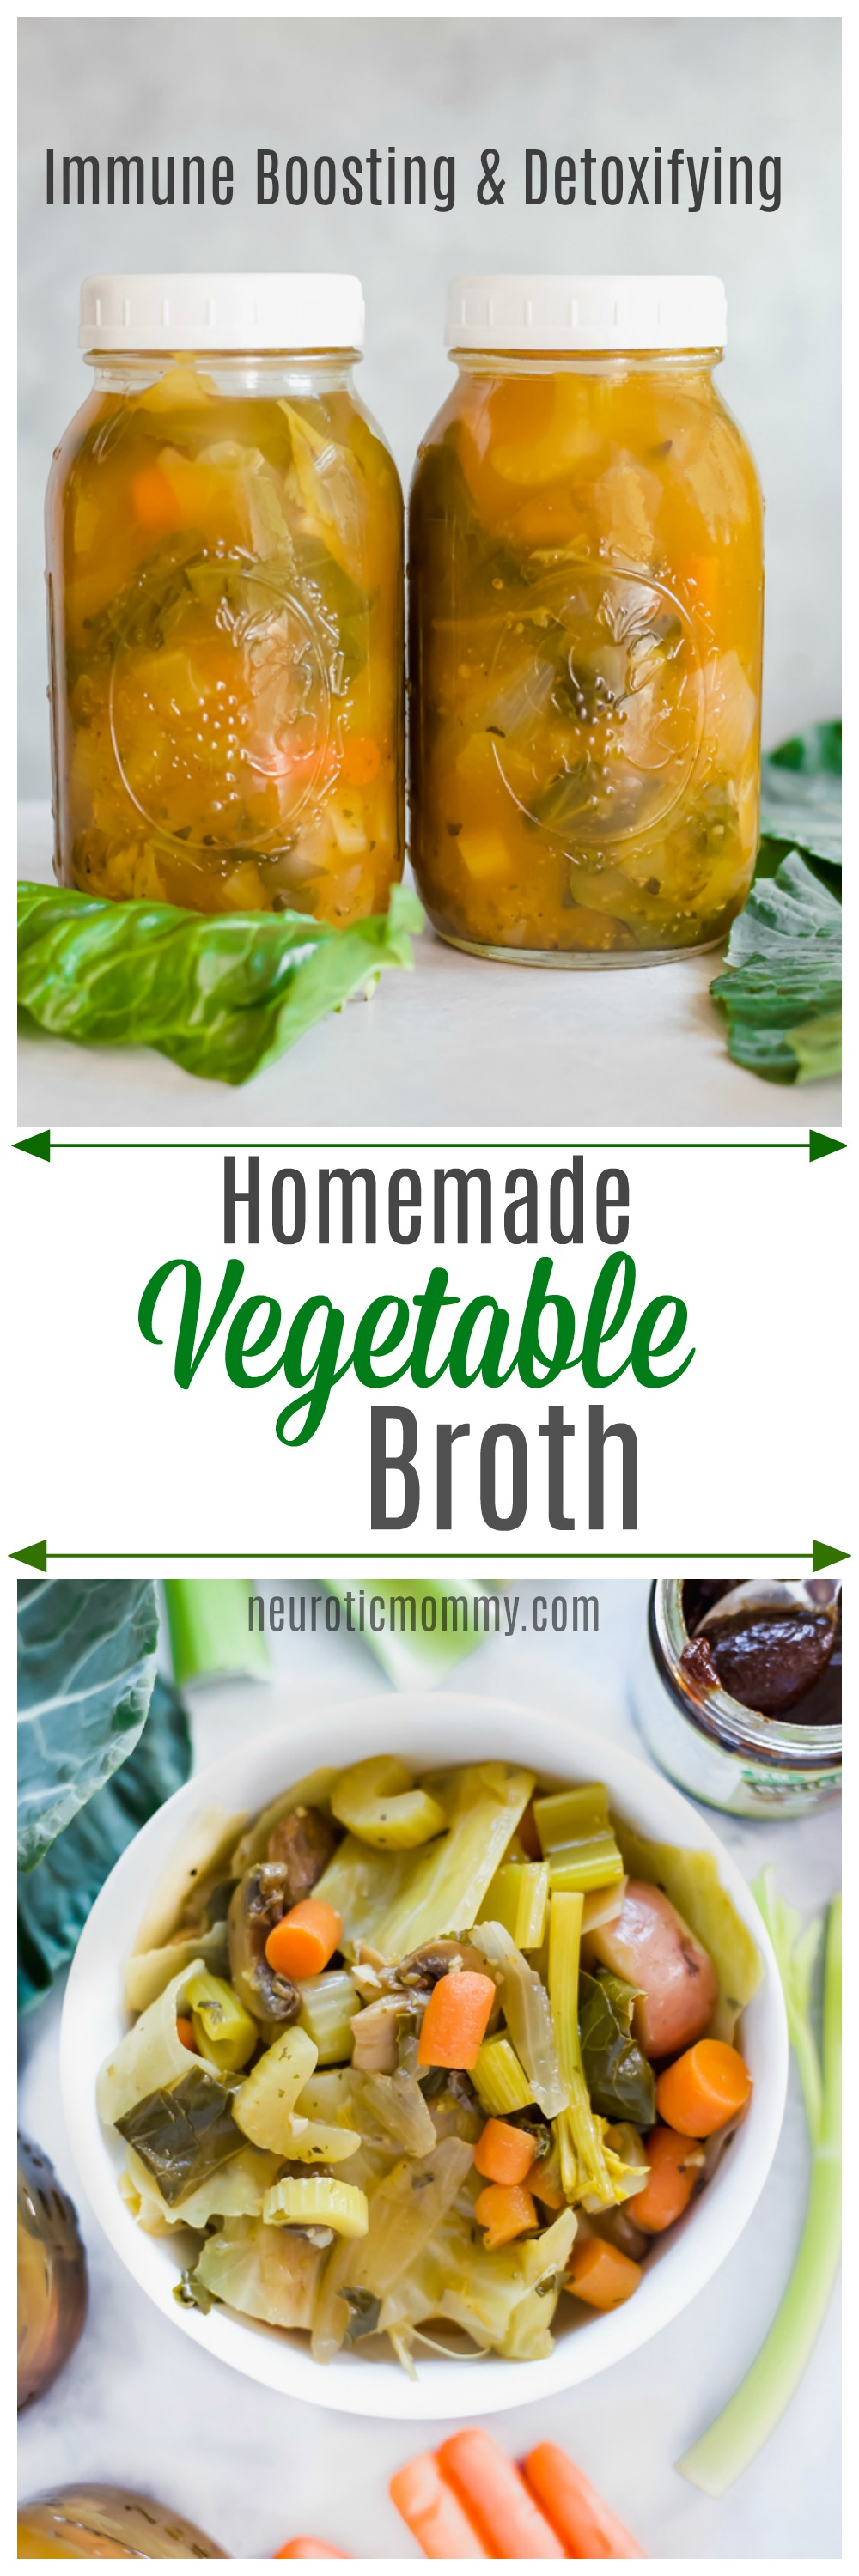 Immune Boosting Homemade Vegetable Broth - Fight against colds and flus by building up your immune system with this anti-inflammatory broth. Keeping healthy no matter what the season is optimal. NeuroticMommy.com